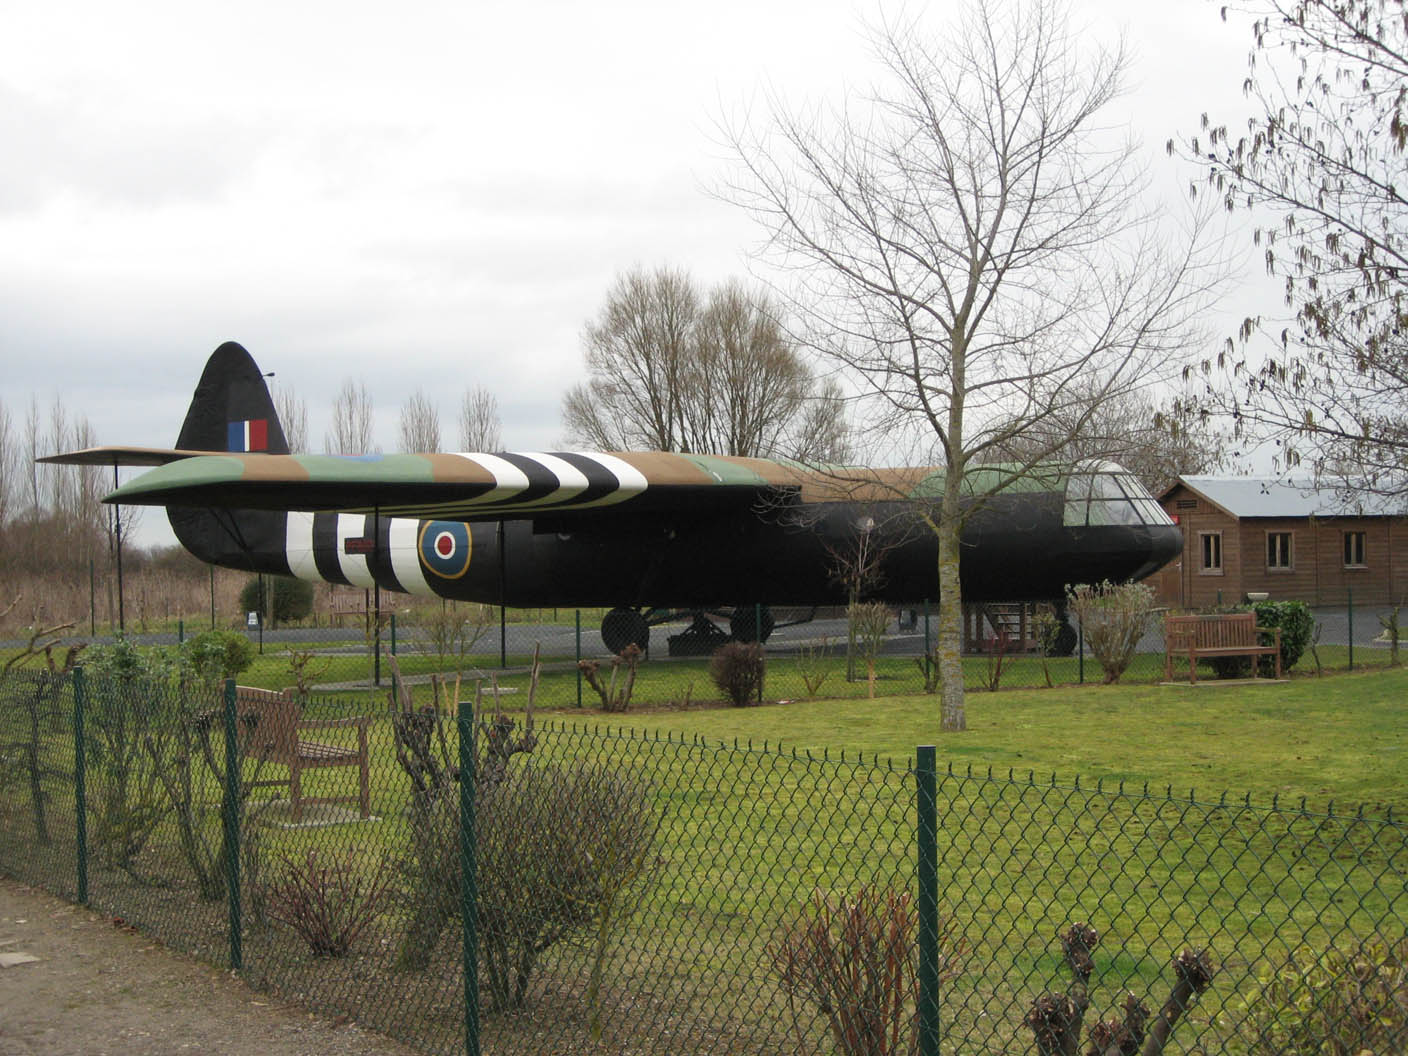 Airspeed AS.51 Horsa, World War II glider. Taken at the Pegasus Bridge Museum, Bénouville, France, February 2008. Author: Fodfish (Image via Wikipedia, ref. 2)